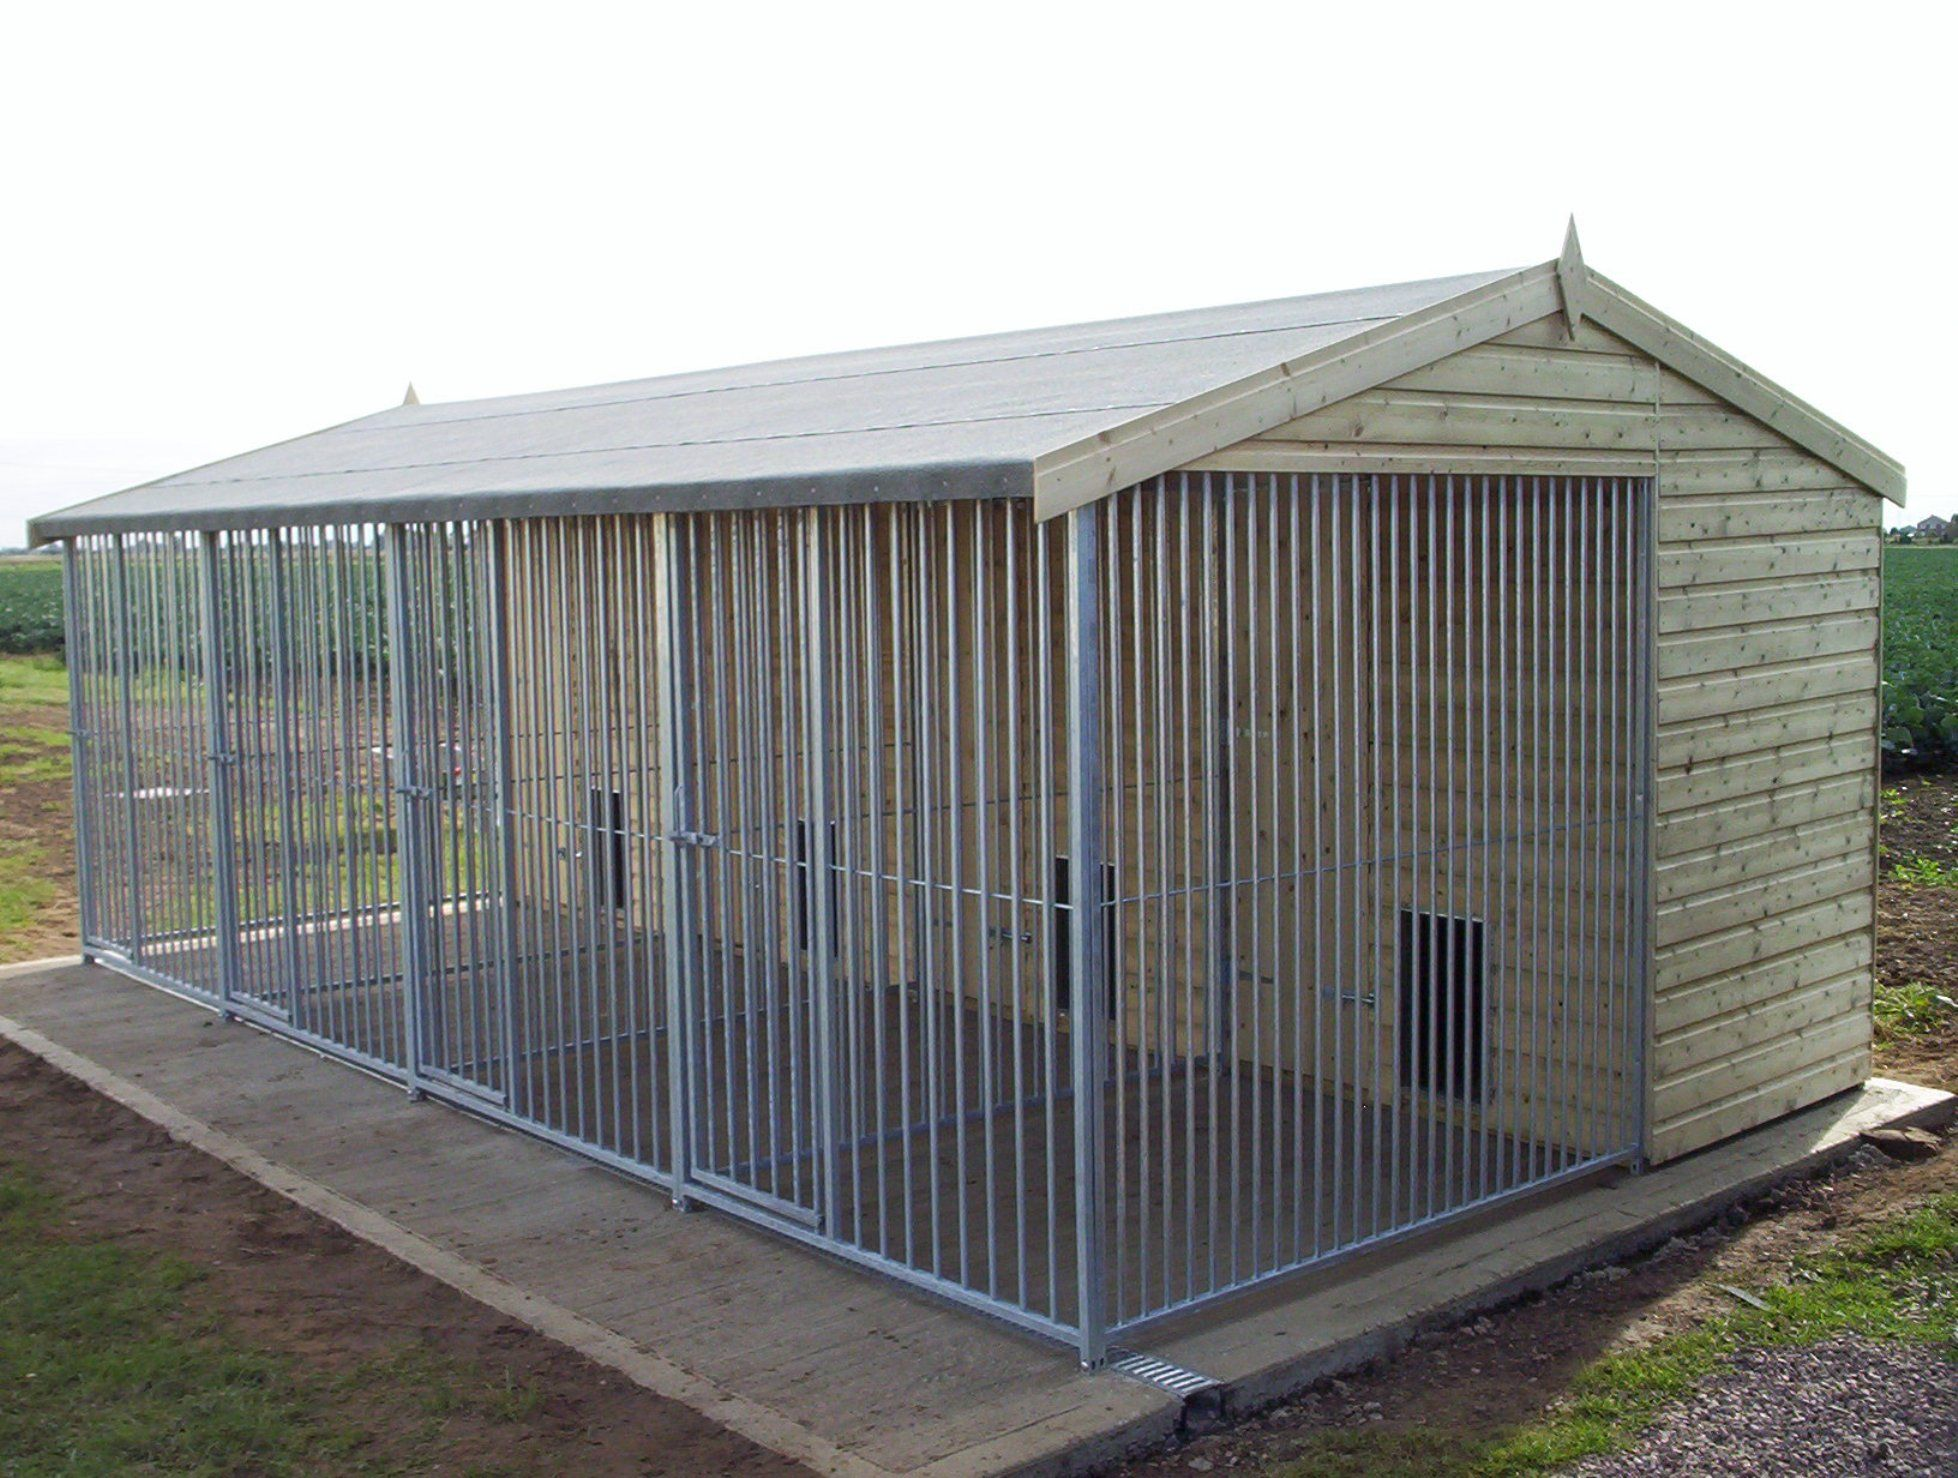 Dog kennel blueprints plans bing images ideas for your for Indoor outdoor dog kennel design